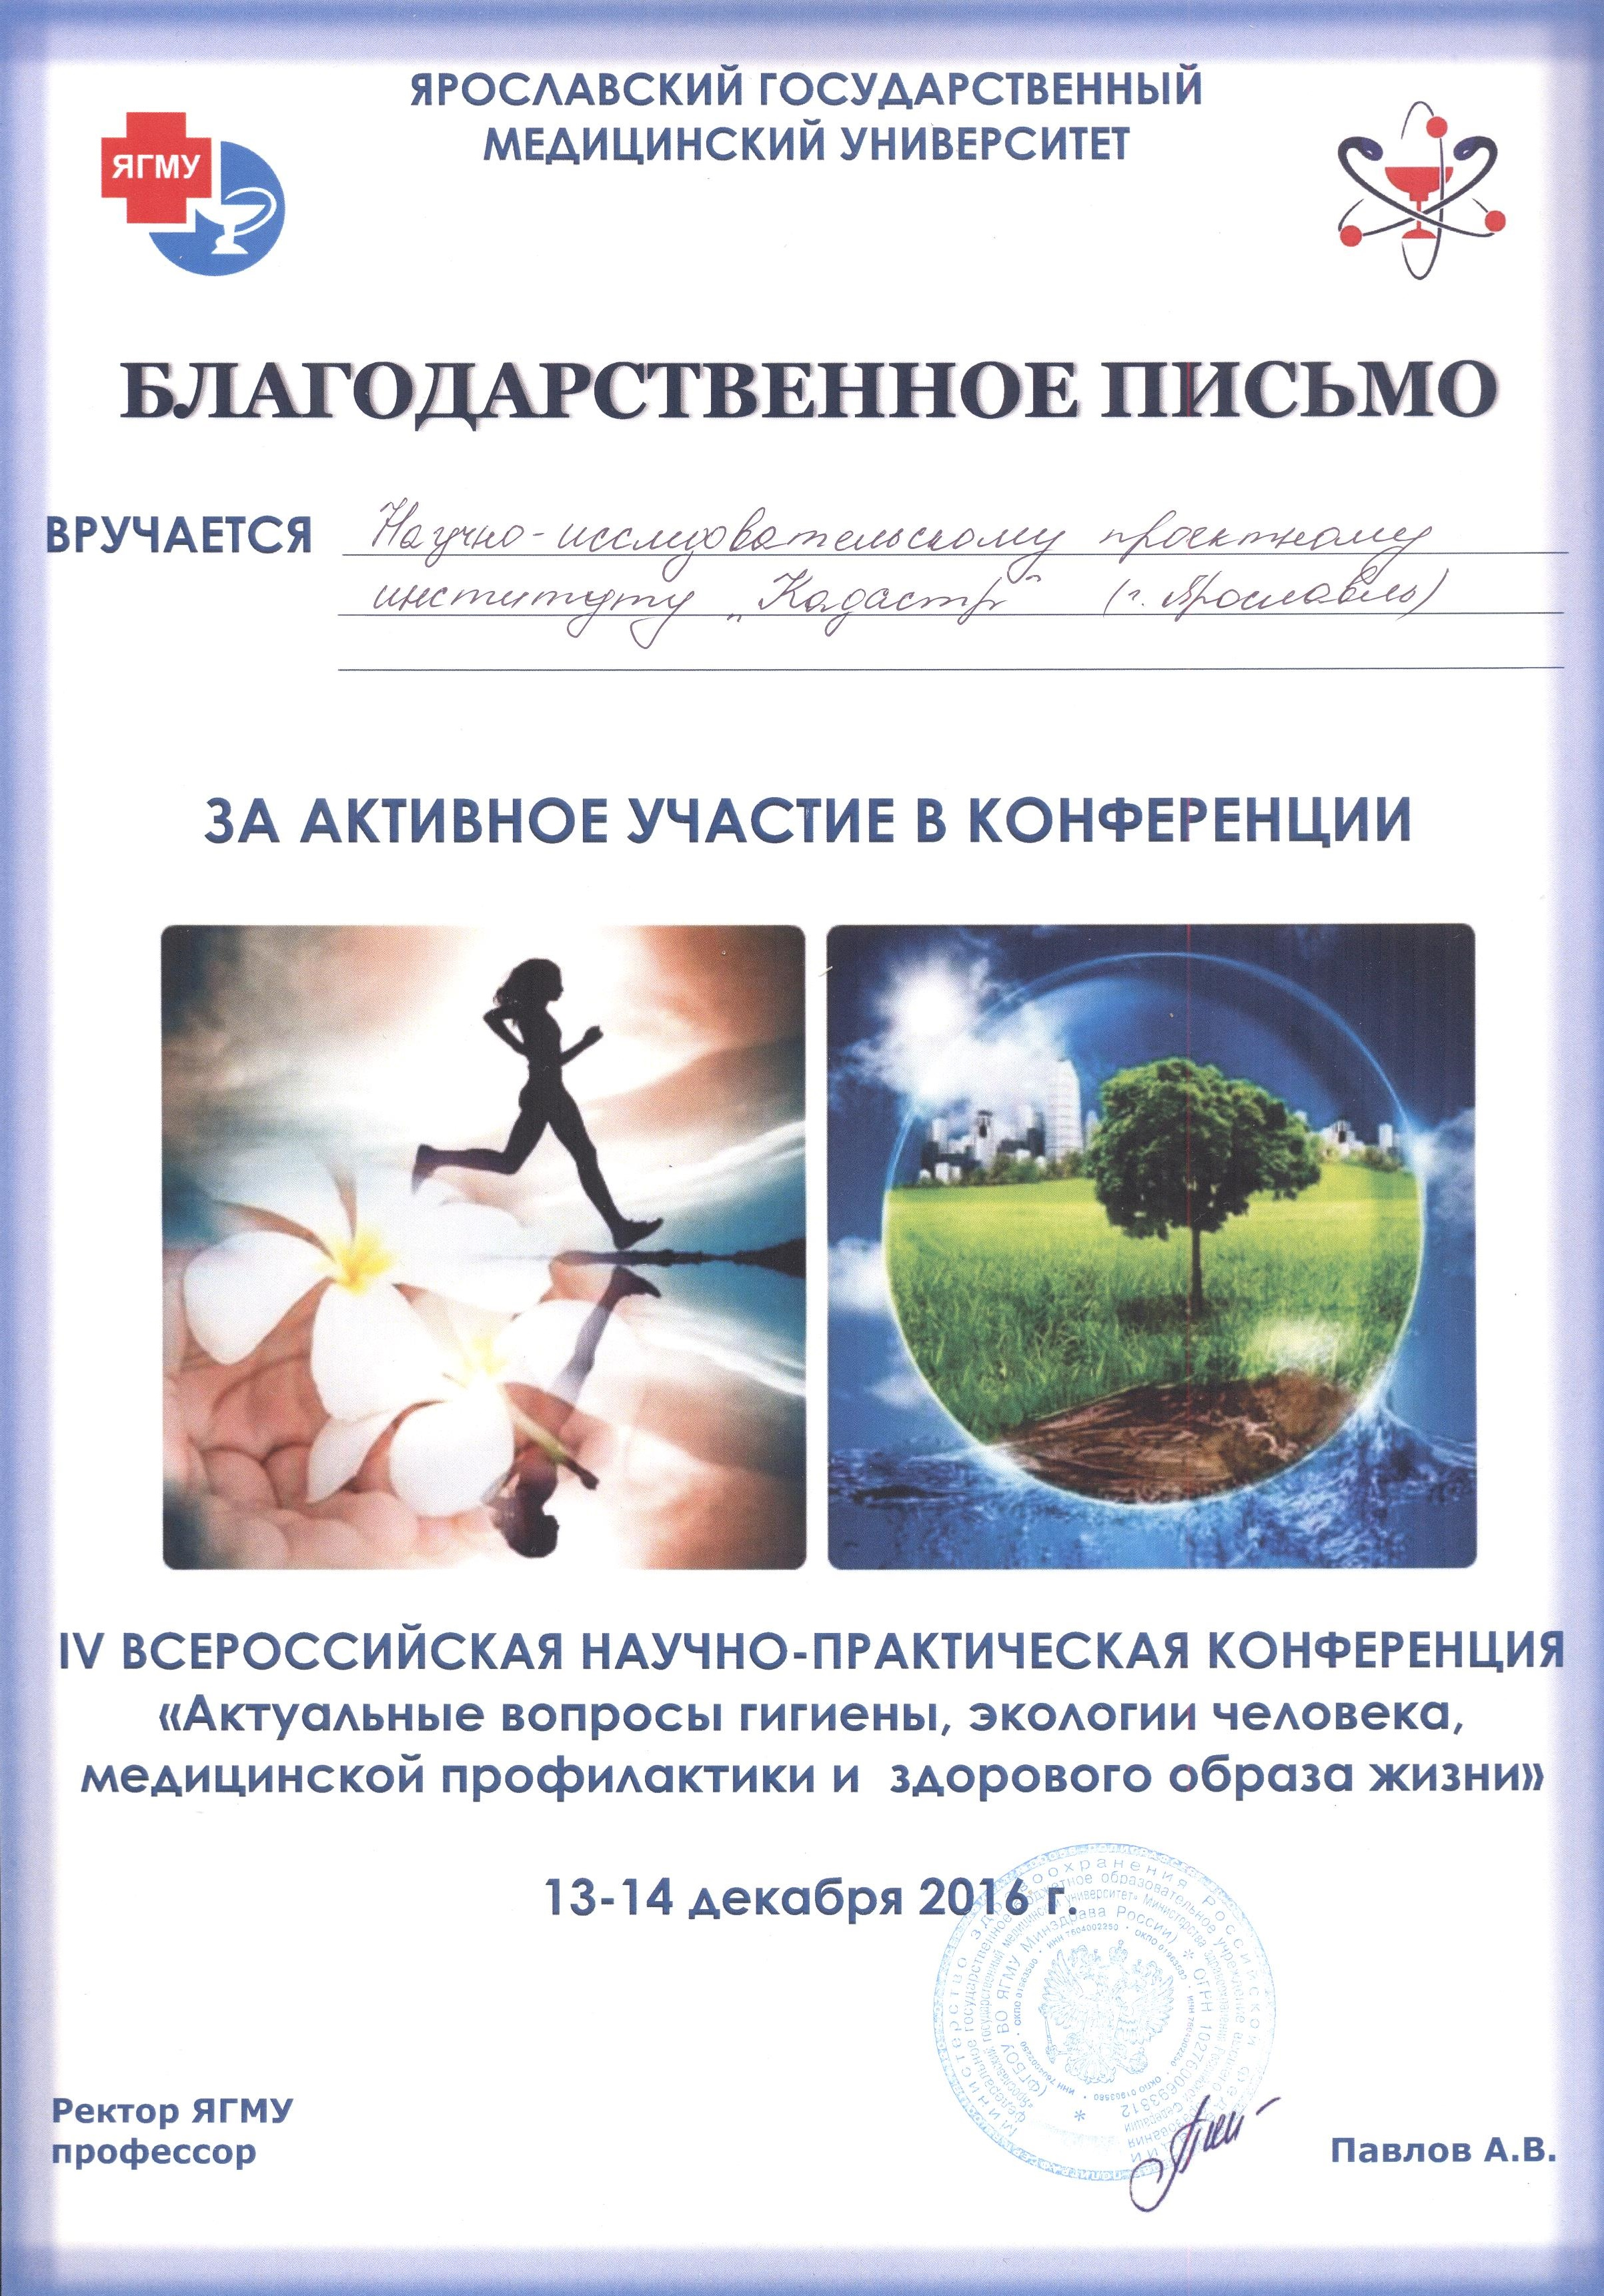 "Representative of the Cadastеr Institute made a presentation at the IV All-Russian Scientific and Practical Conference ""Topical Issues of Hygiene, Human Ecology, Medical Prevention and Healthy Lifestyle"""